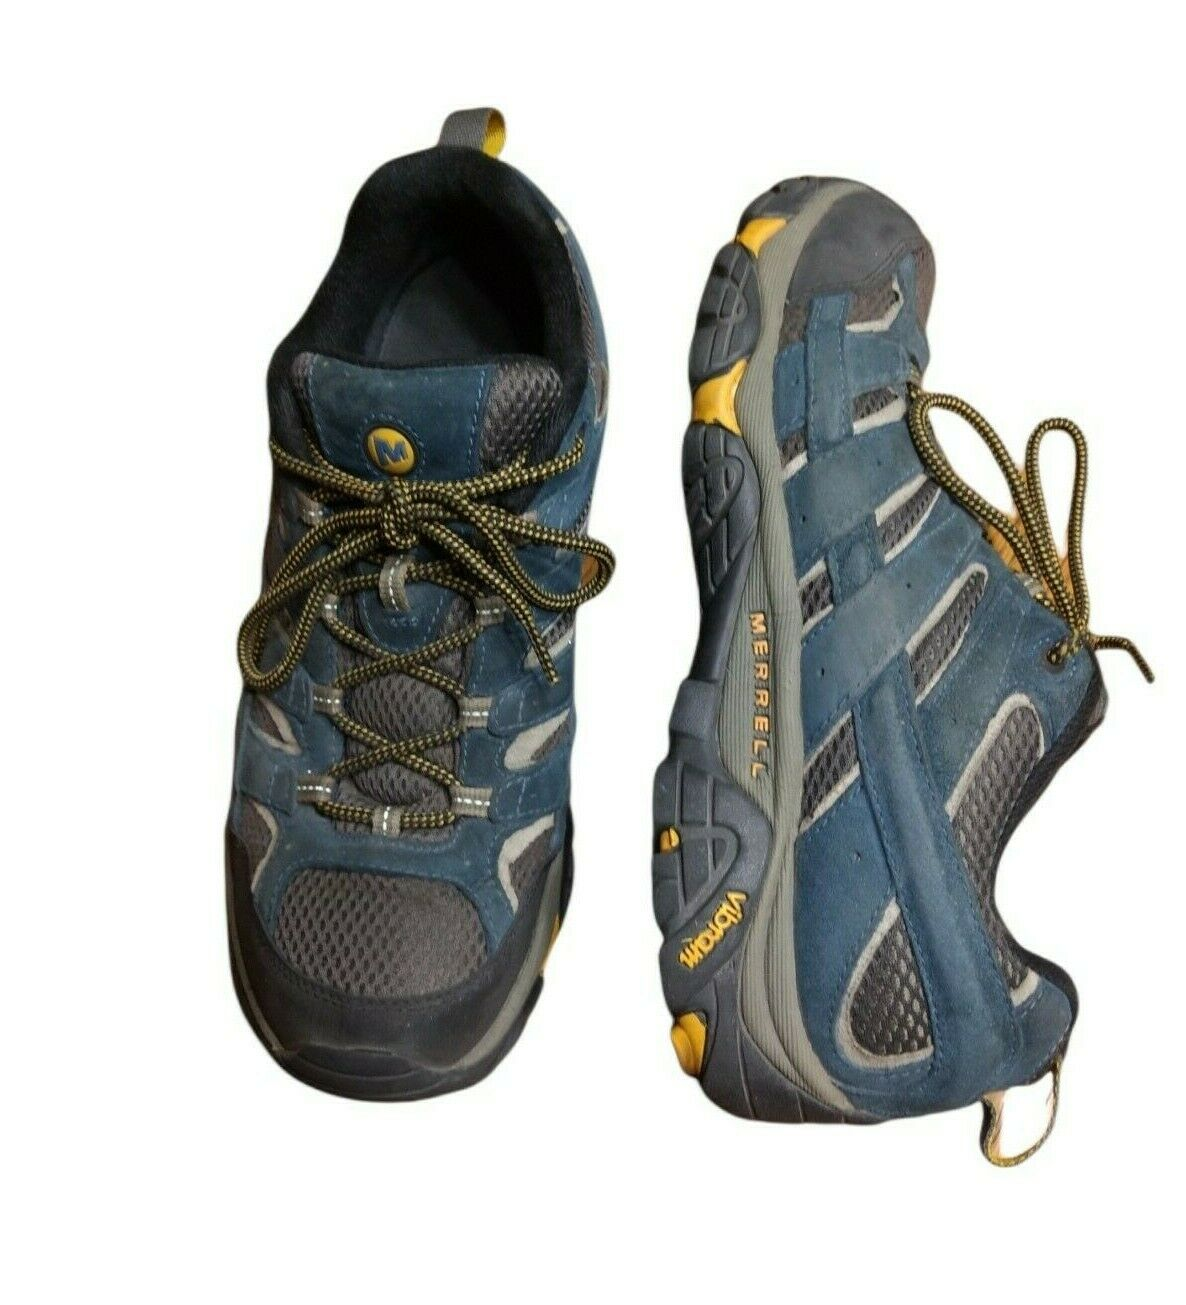 Merrell Mens Moab Ventilator 2 Hiking Shoes Size 11 J49061 Blue Lace Up Low Top